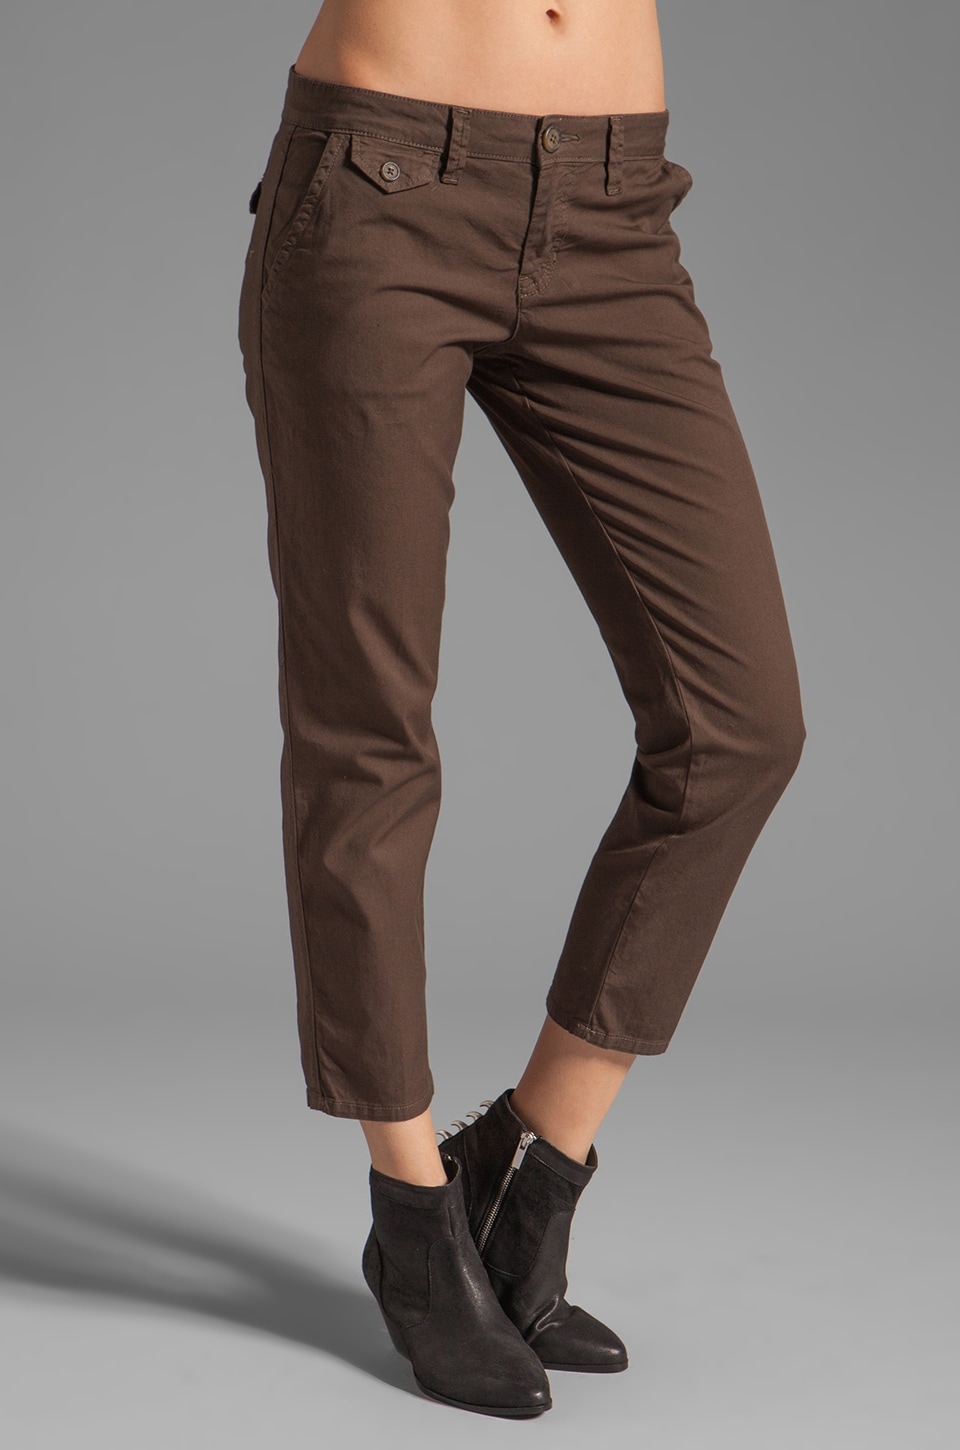 Sanctuary Everyday Boyfriend Chino in Olive Green